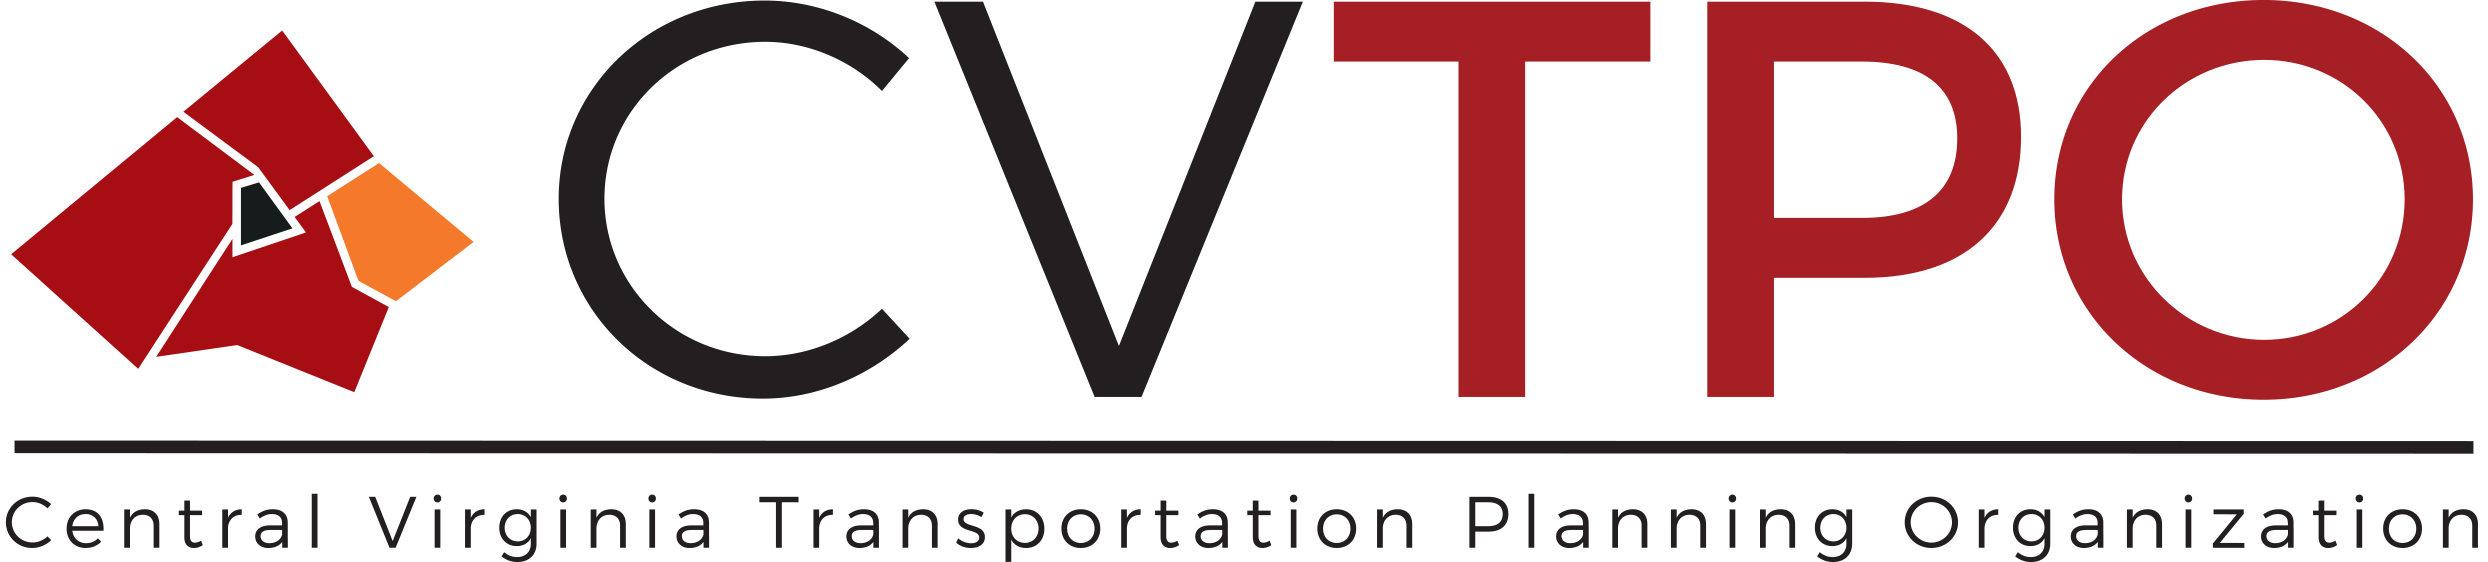 CVTPO Central va planning logo